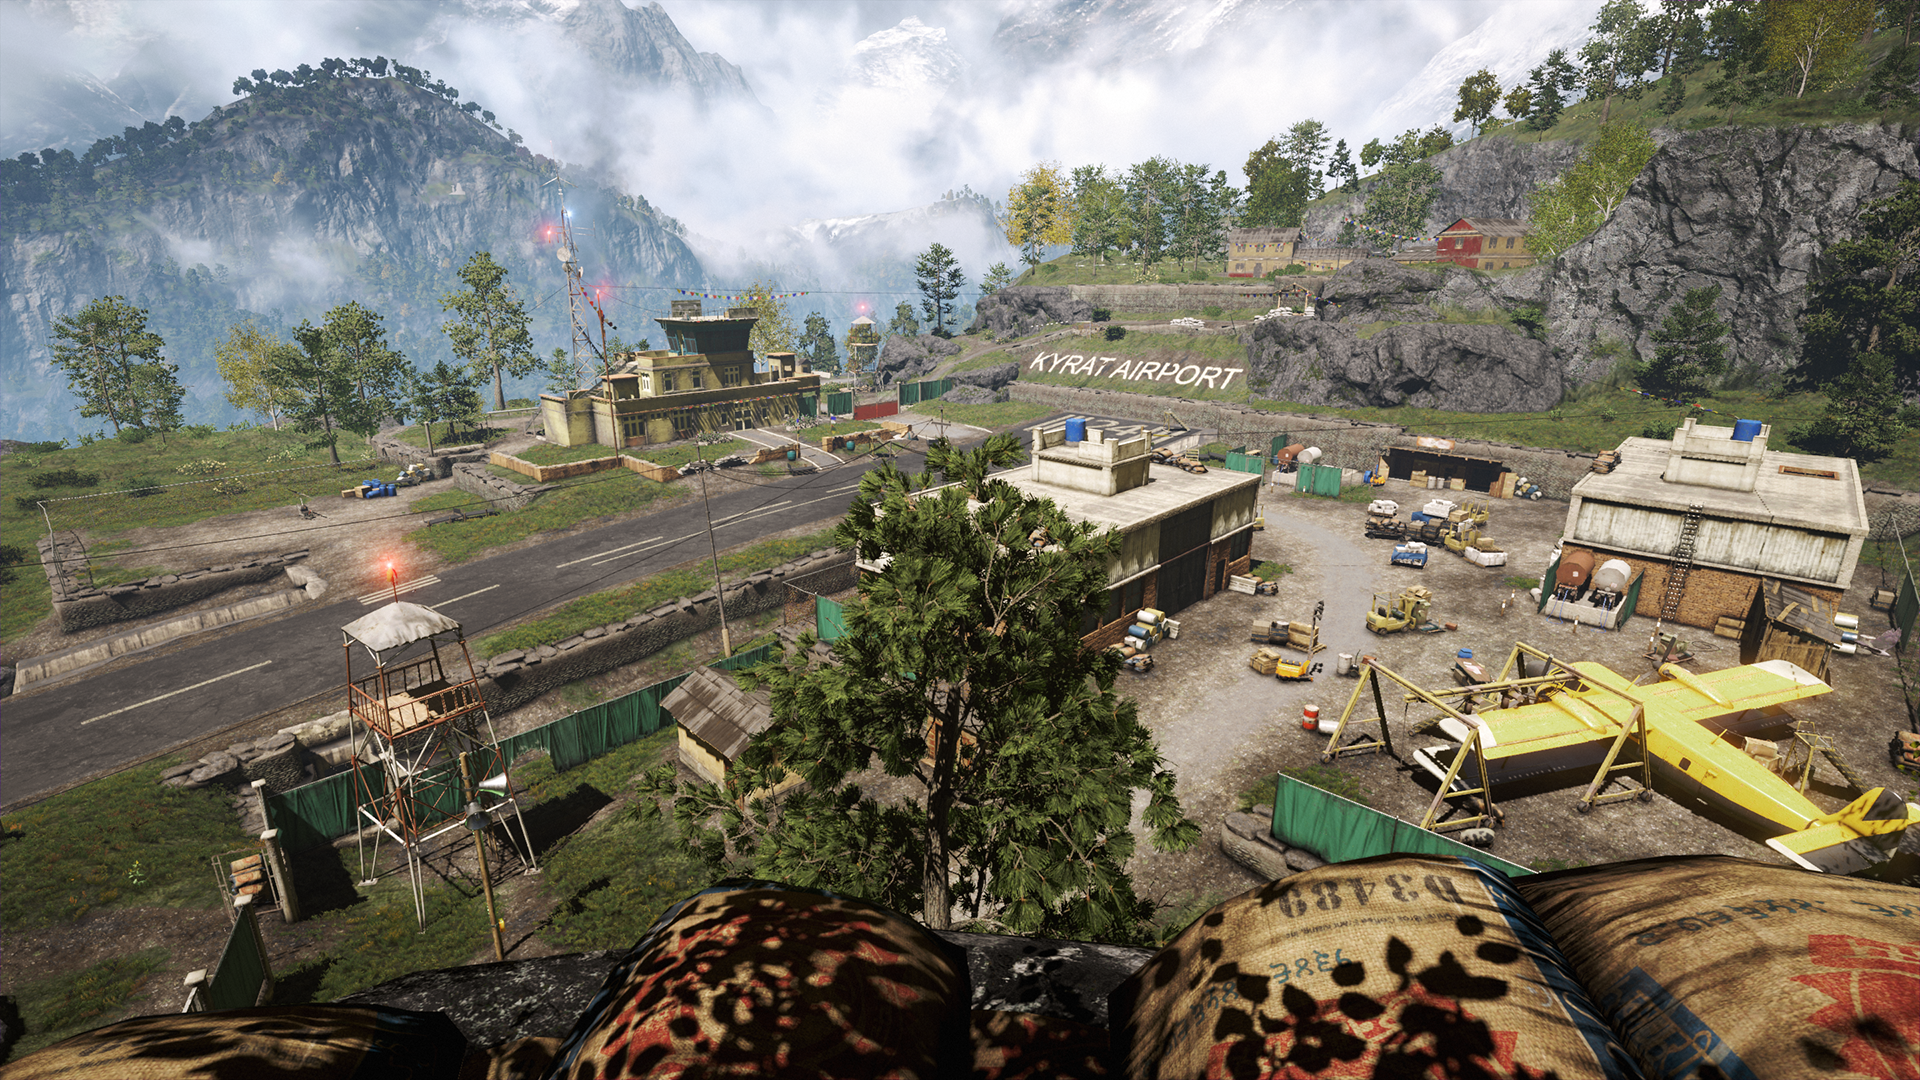 geforce far cry 4 environment quality interactive comparison